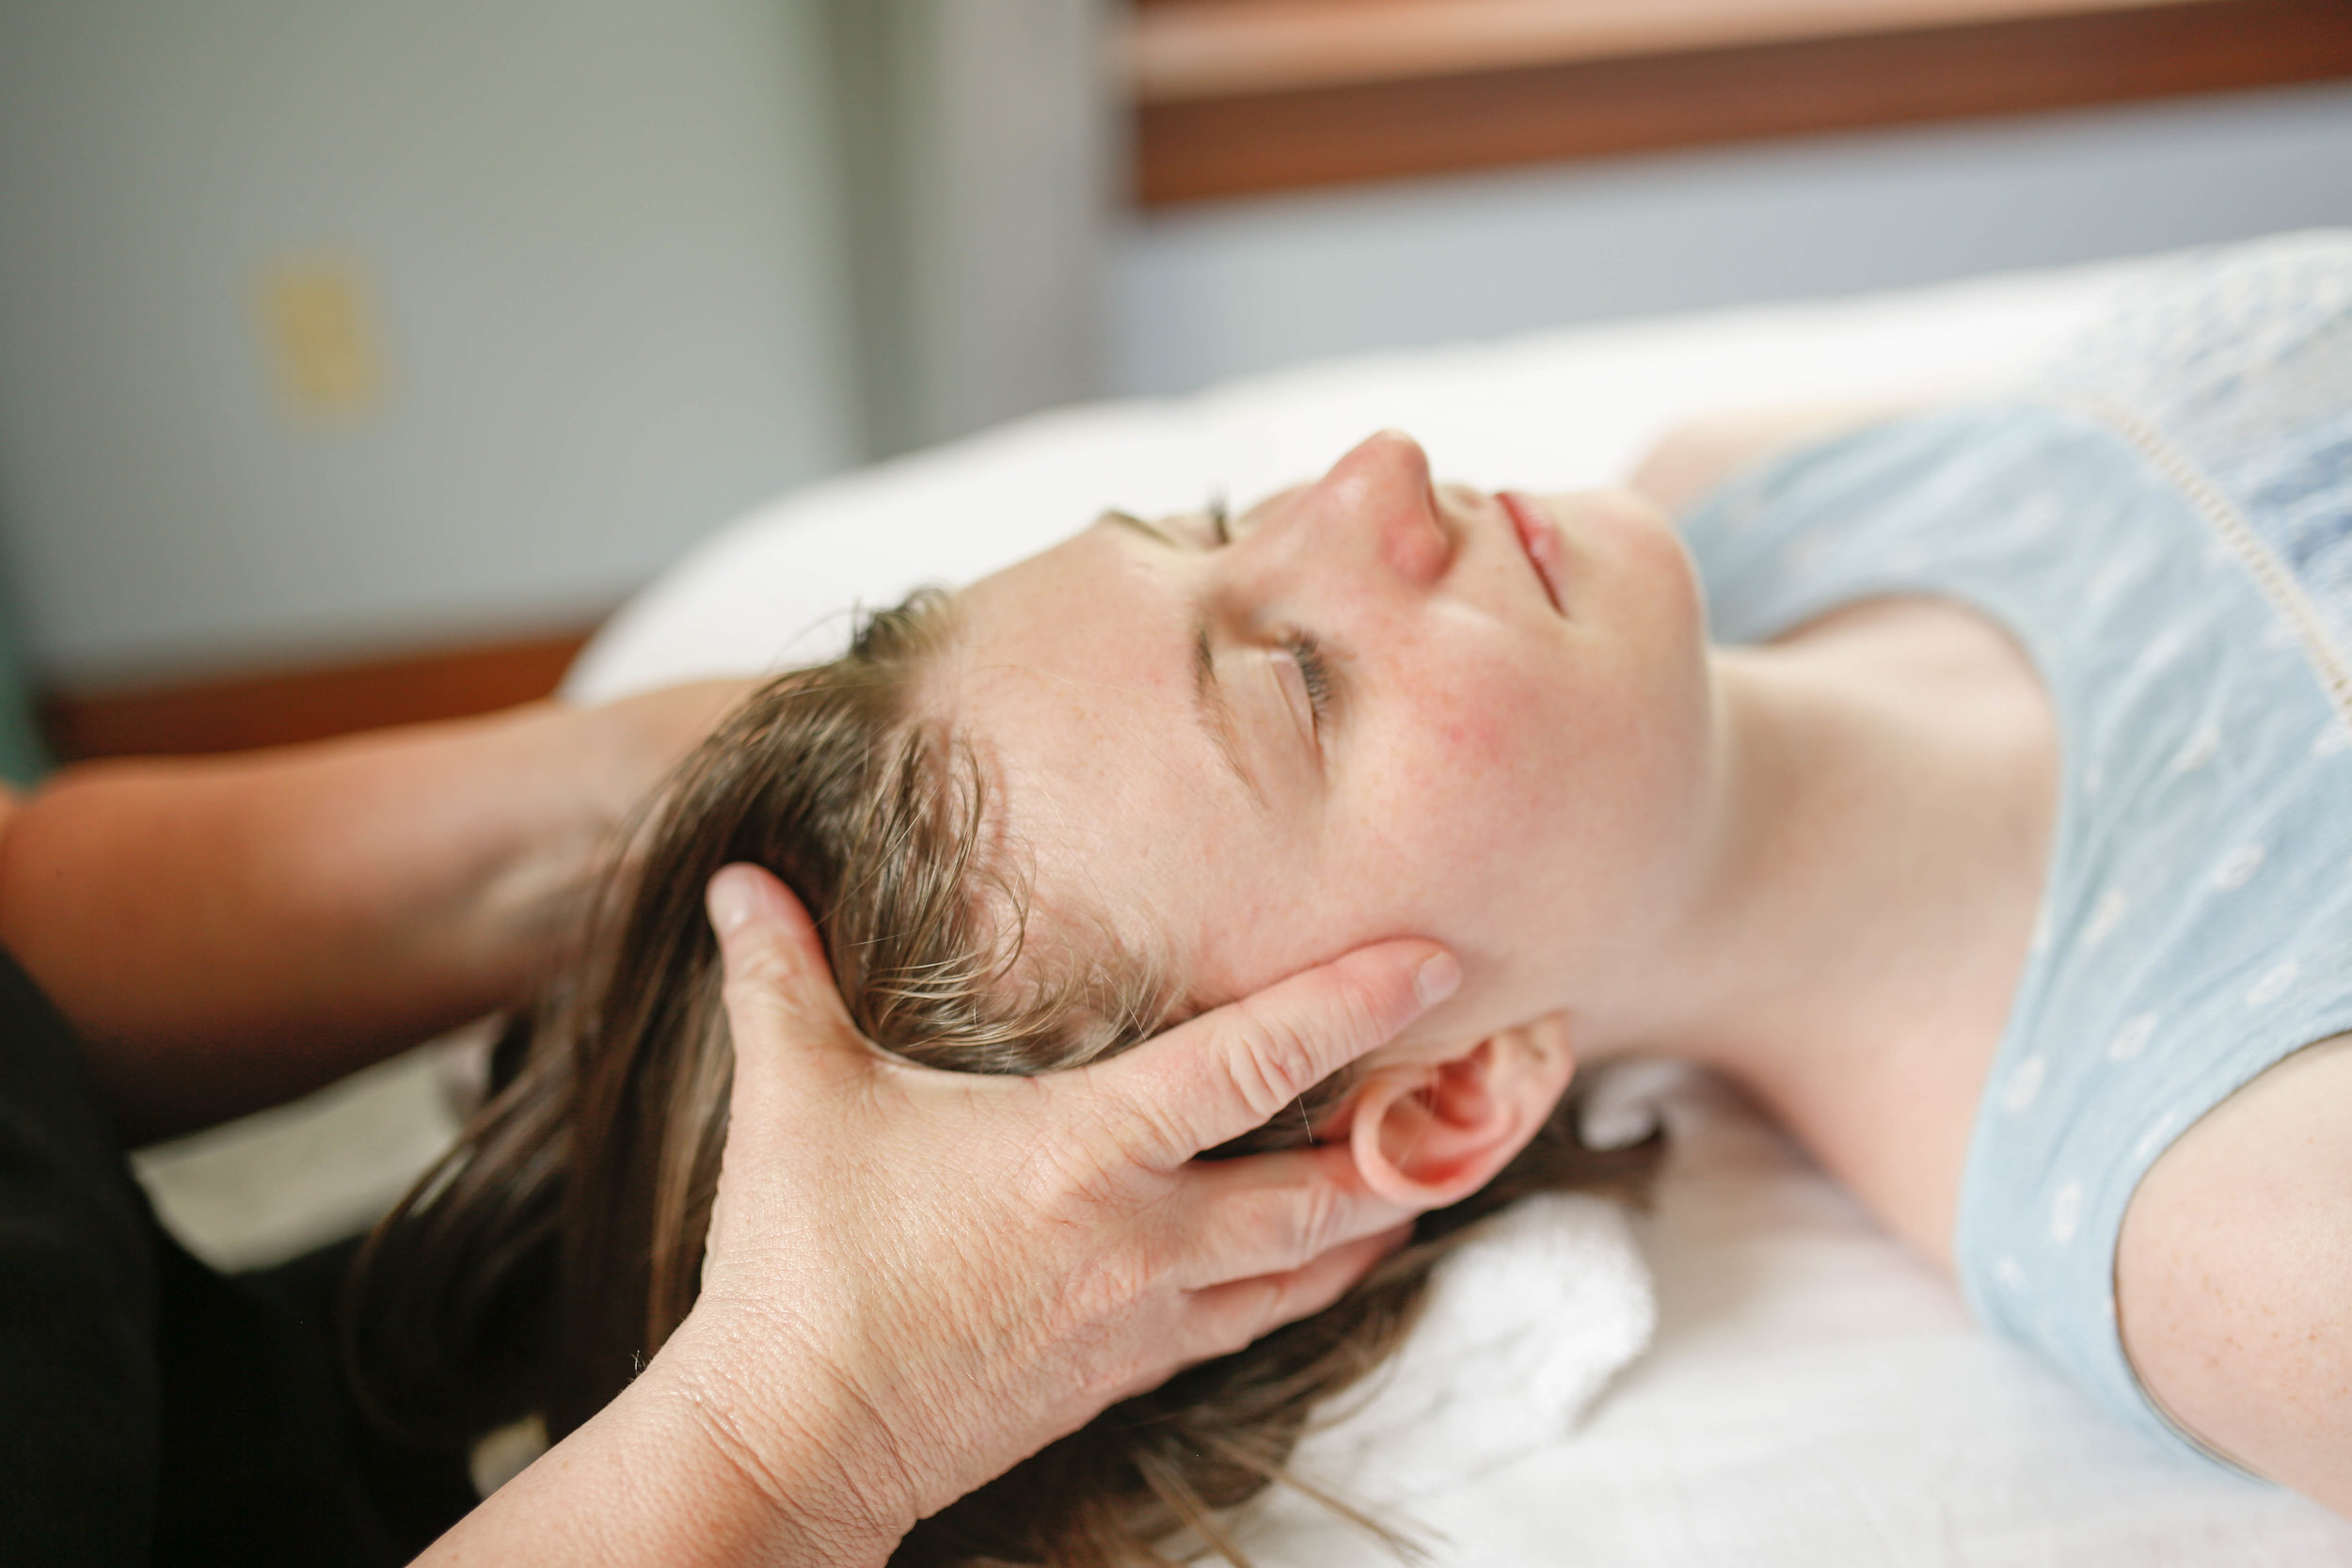 Services - Craniosacral therapy, deep tissue massage, John Barnes' myofascial release 1, Kelly Lott migraine miracle technique, muscle energy 1 & 2, neuromuscular techniques, sciatica relief, swedish massage and TMJ dysfunction